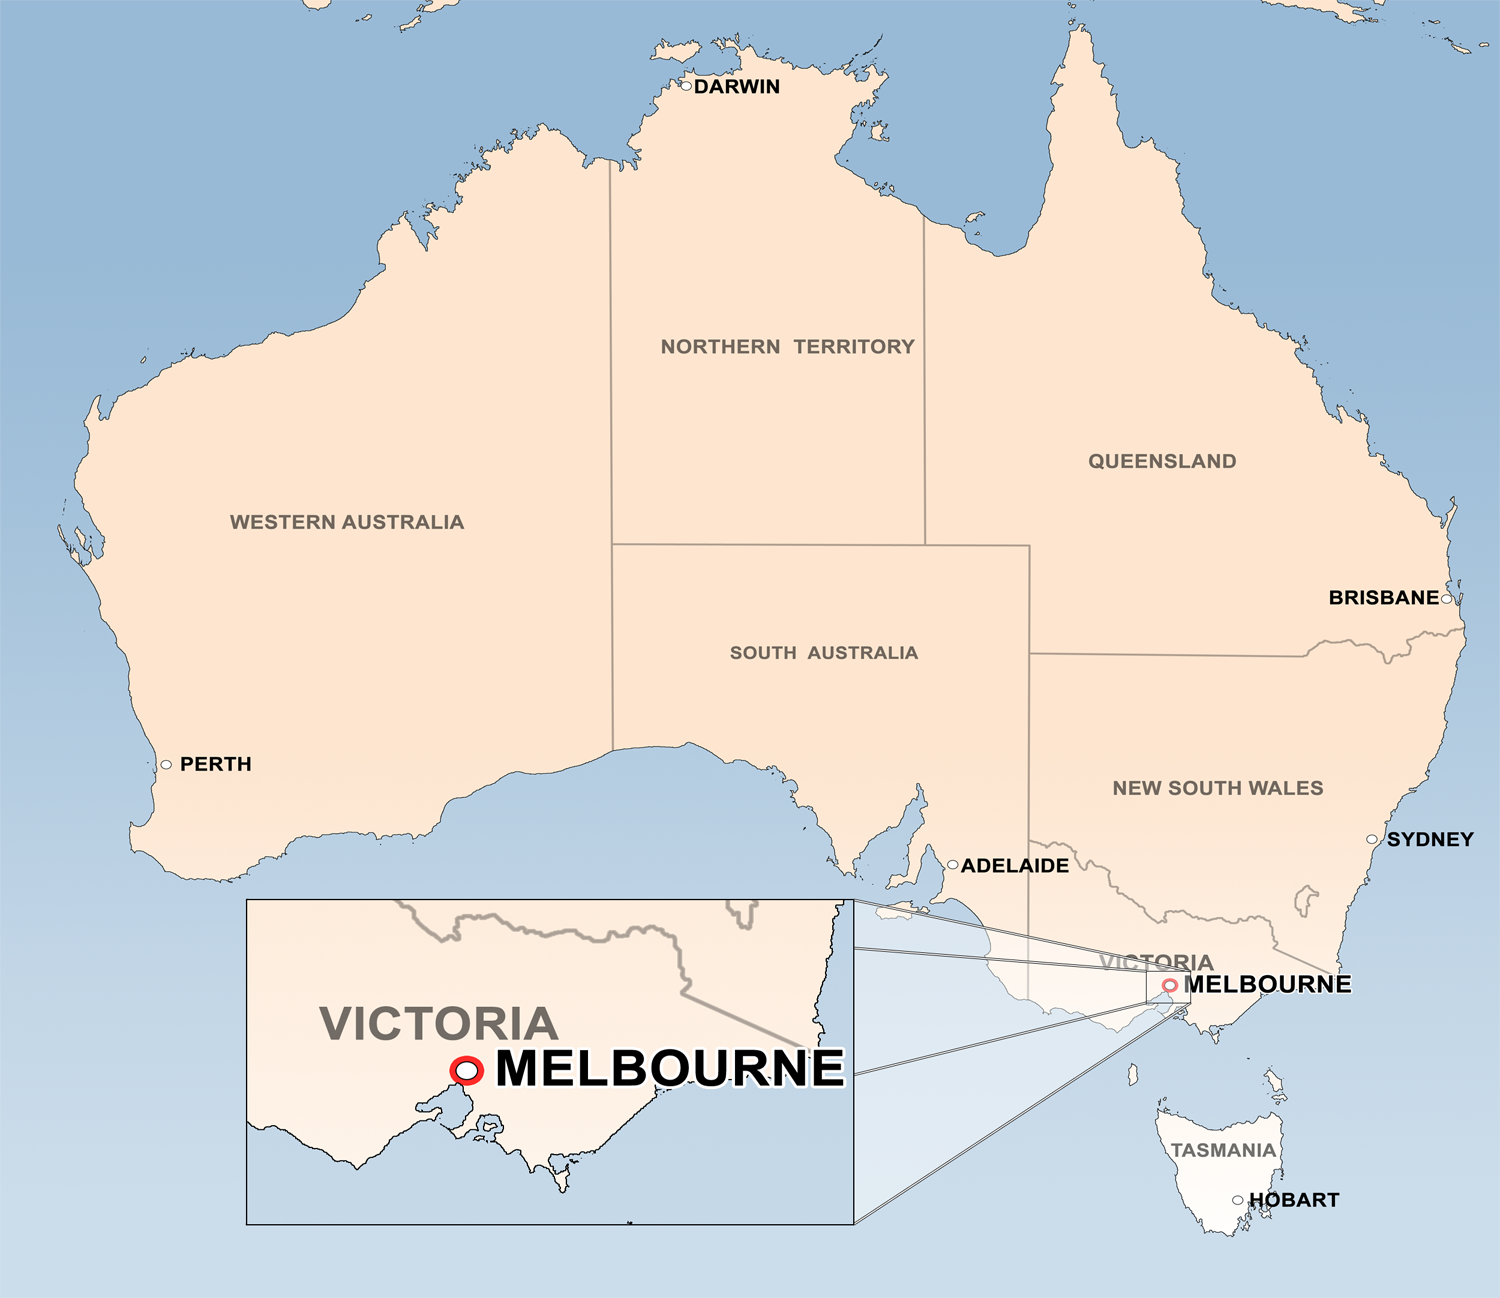 melbourne australia map | Population: 4,077,036 (2nd largest in